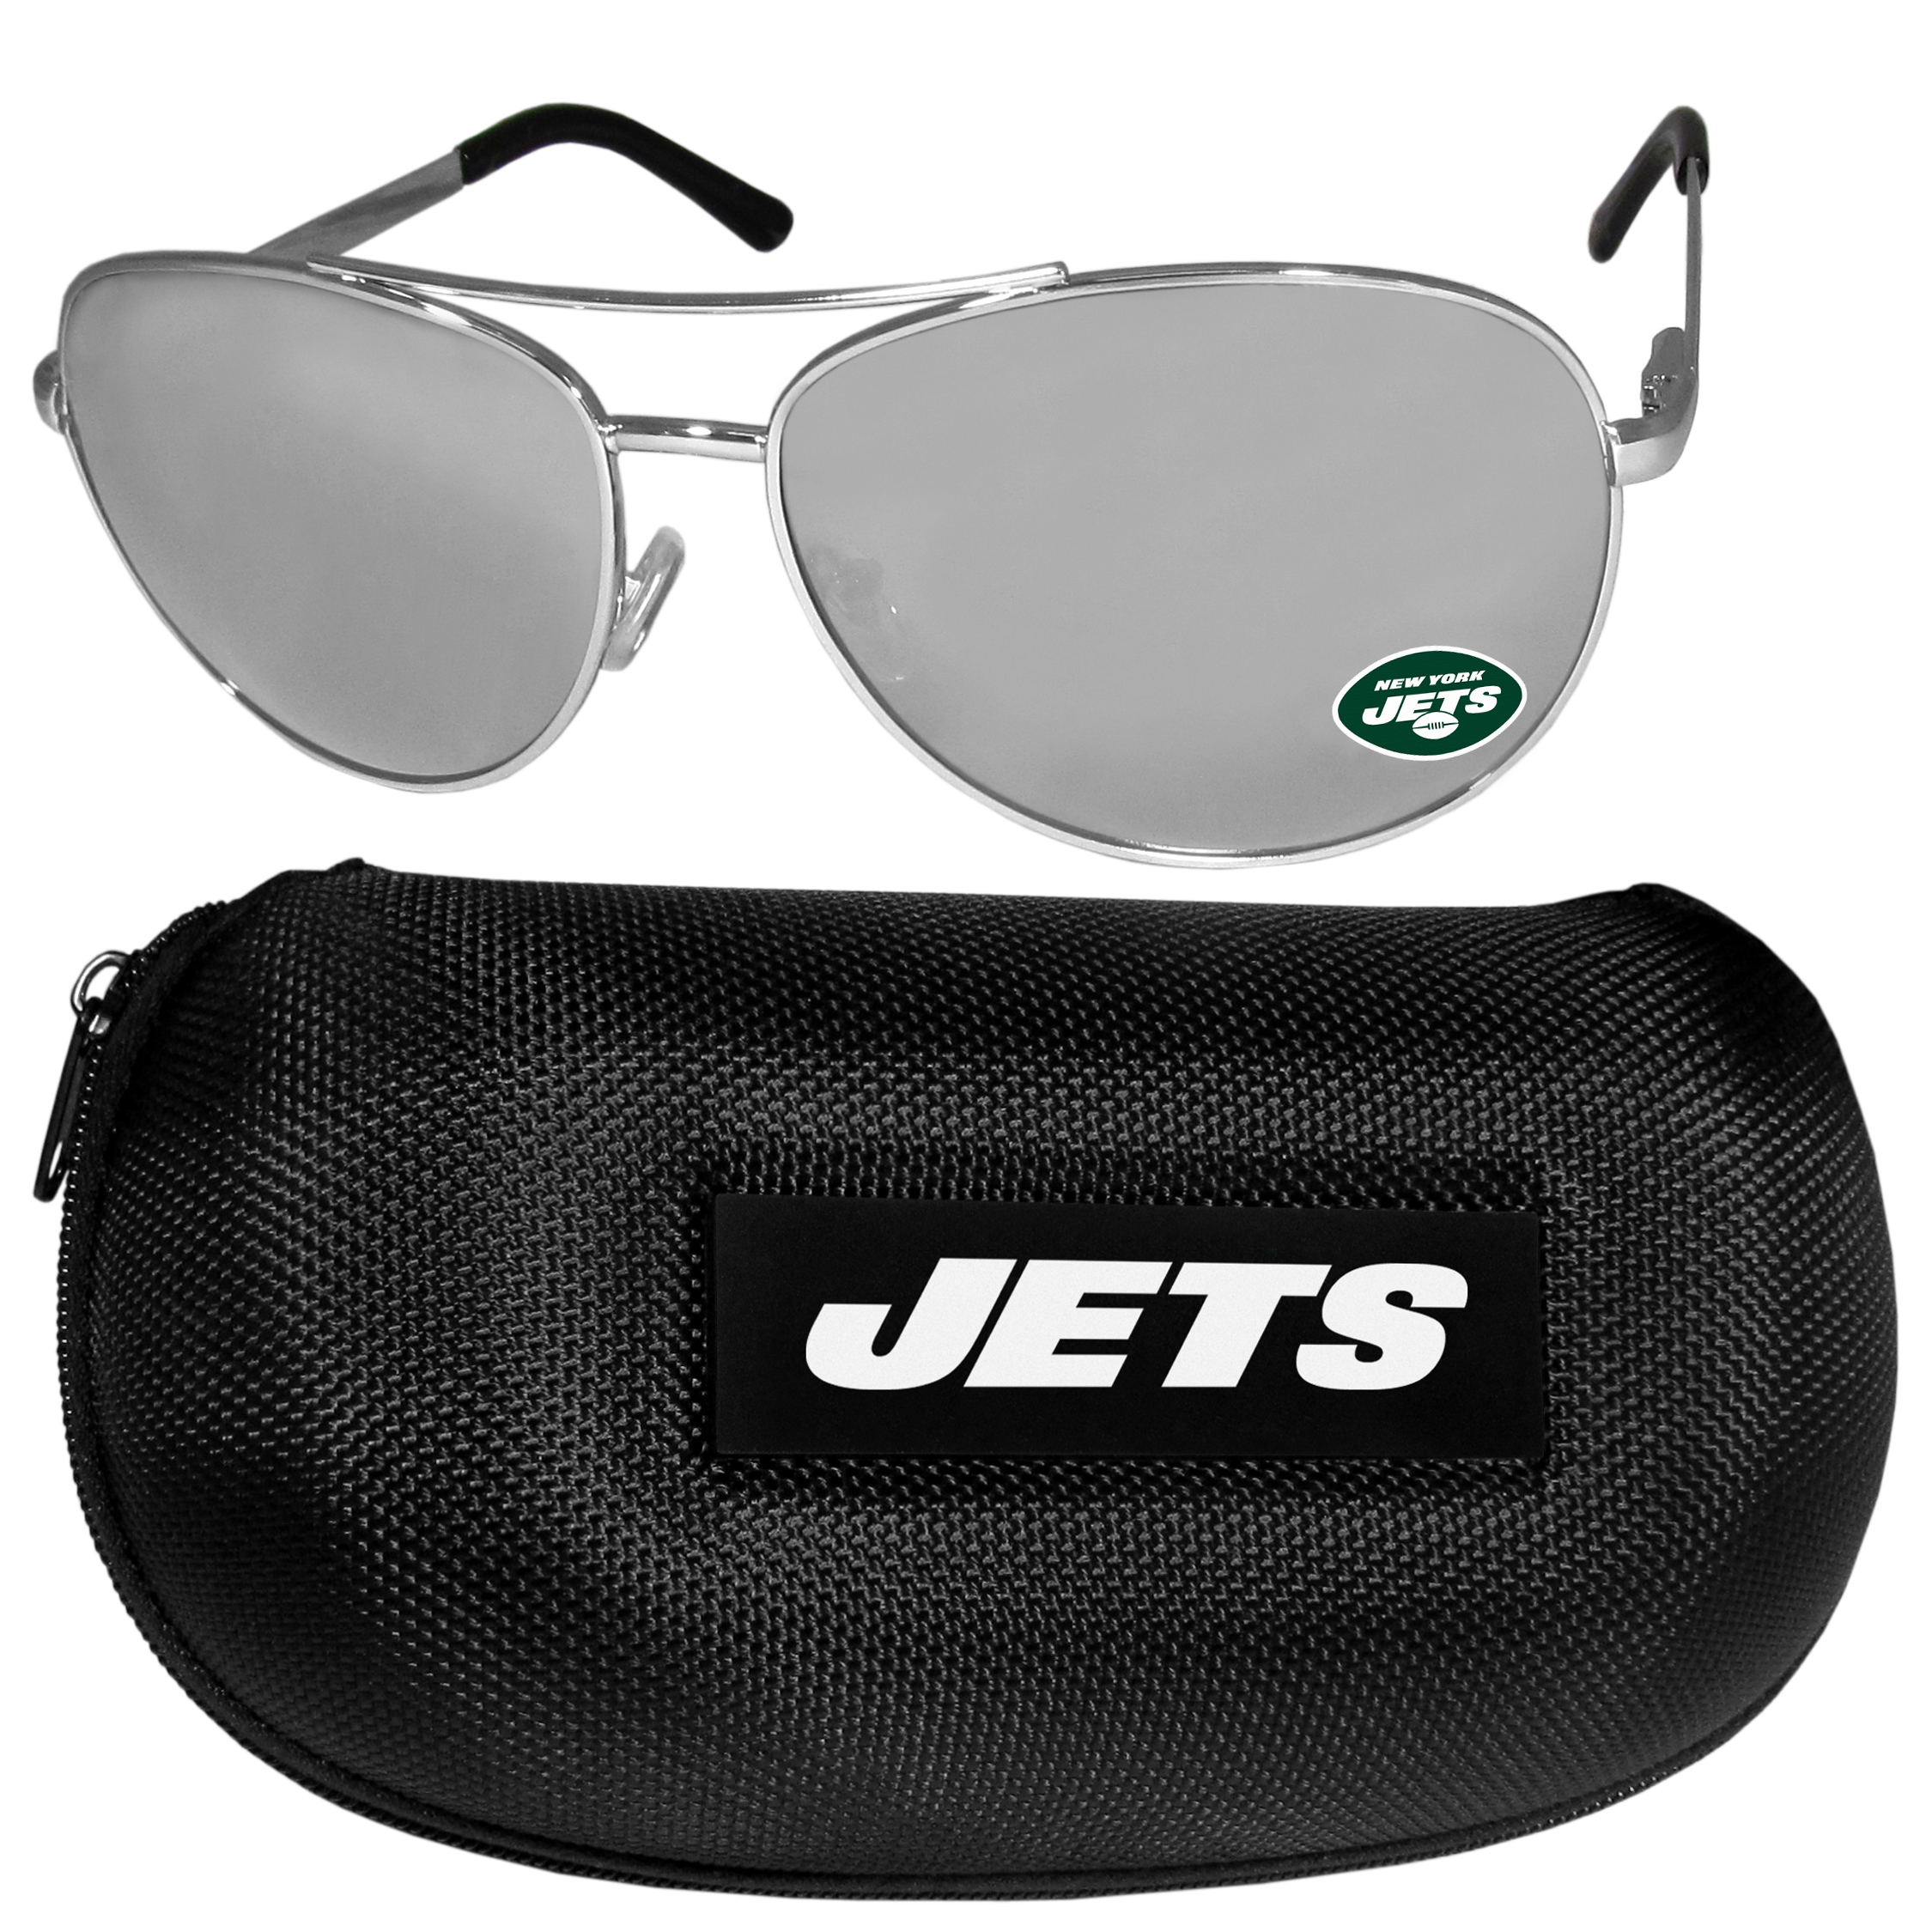 New York Jets Aviator Sunglasses and Zippered Carrying Case - Aviator sunglasses are truly an iconic retro fashion statement that never goes out-of-style. Our New York Jets  aviator sunglasses pair this classic look with your love of the game. The iridium coated lenses reduce glare while driving, boating, golfing and their 100% UVA/UVB rating provides you with the maximum UV protection for all your outdoor activities. A millennial favorite, these affordable designer frames are the perfect eyewear accessory for a sports fan that is looking for high-quality at an affordable price. The durable, flex hinged frames are tough enough for hiking and camping or if you prefer sun bathing by the pool or on the beach these shades will really stand the test of time. The sunglasses come with a hard shell zippered case which has a large team logo on the lid that will make even the most die-hard fan proud!